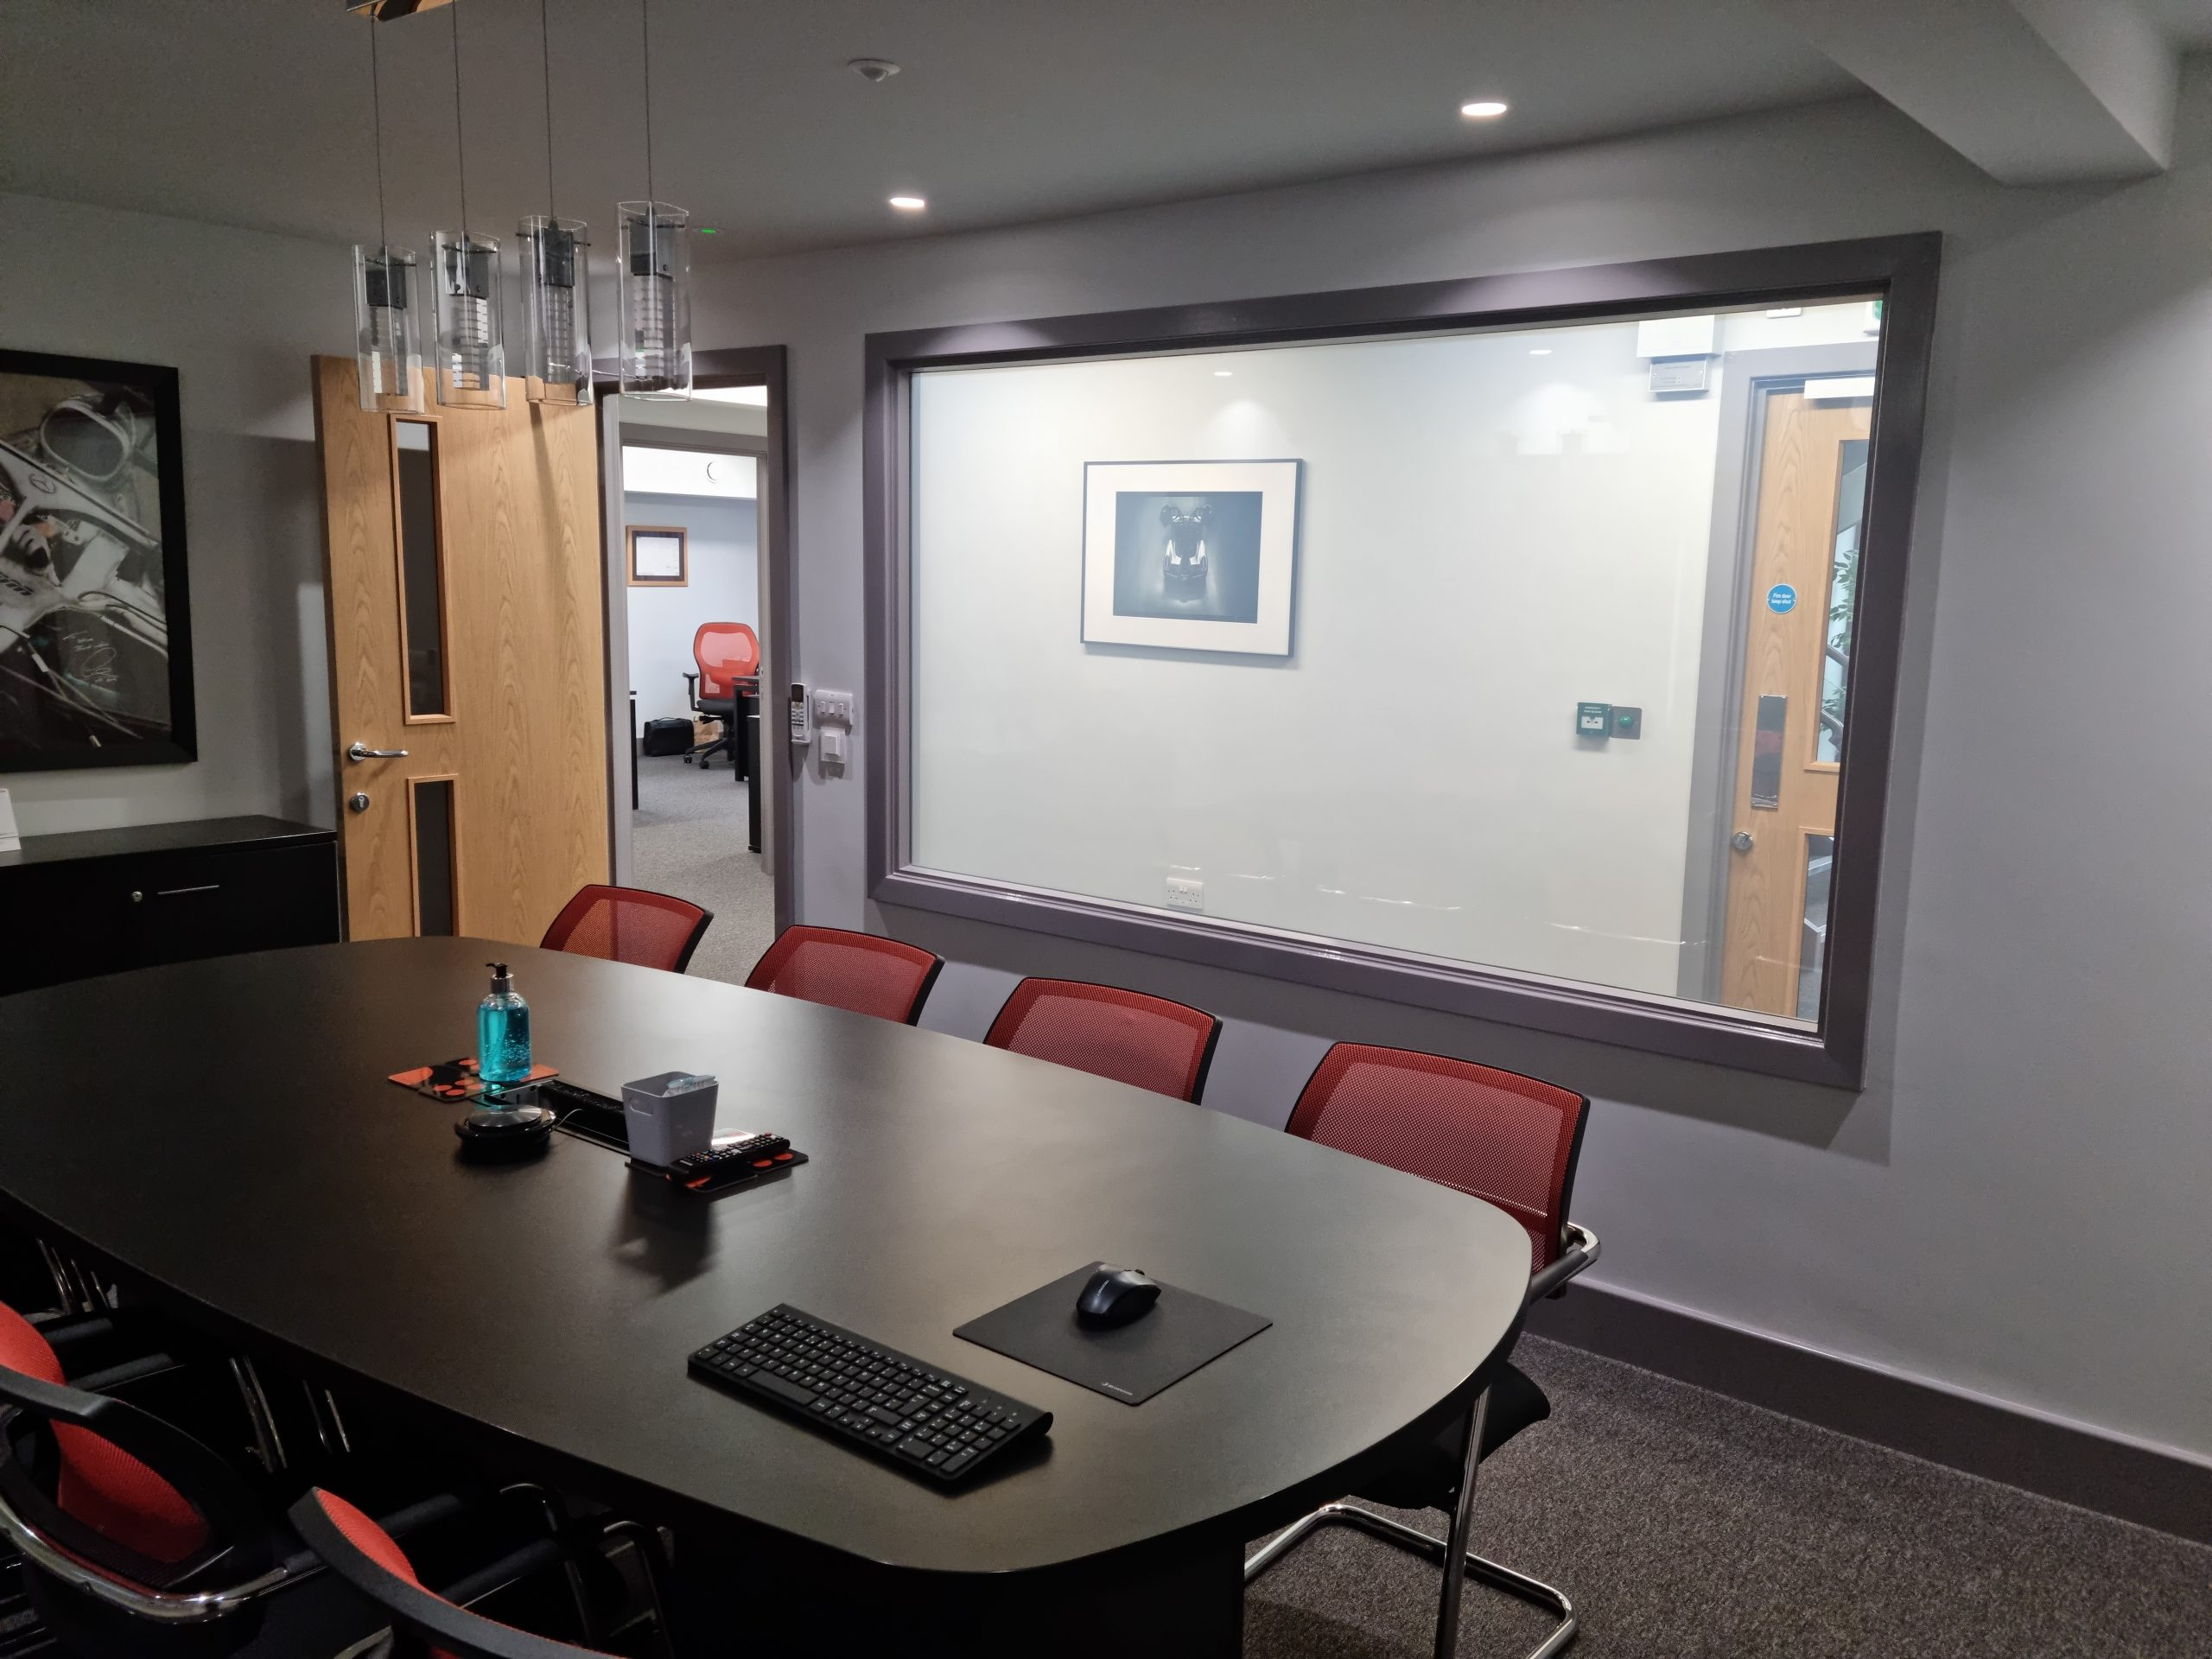 Smartglass privacy glass project in meeting room